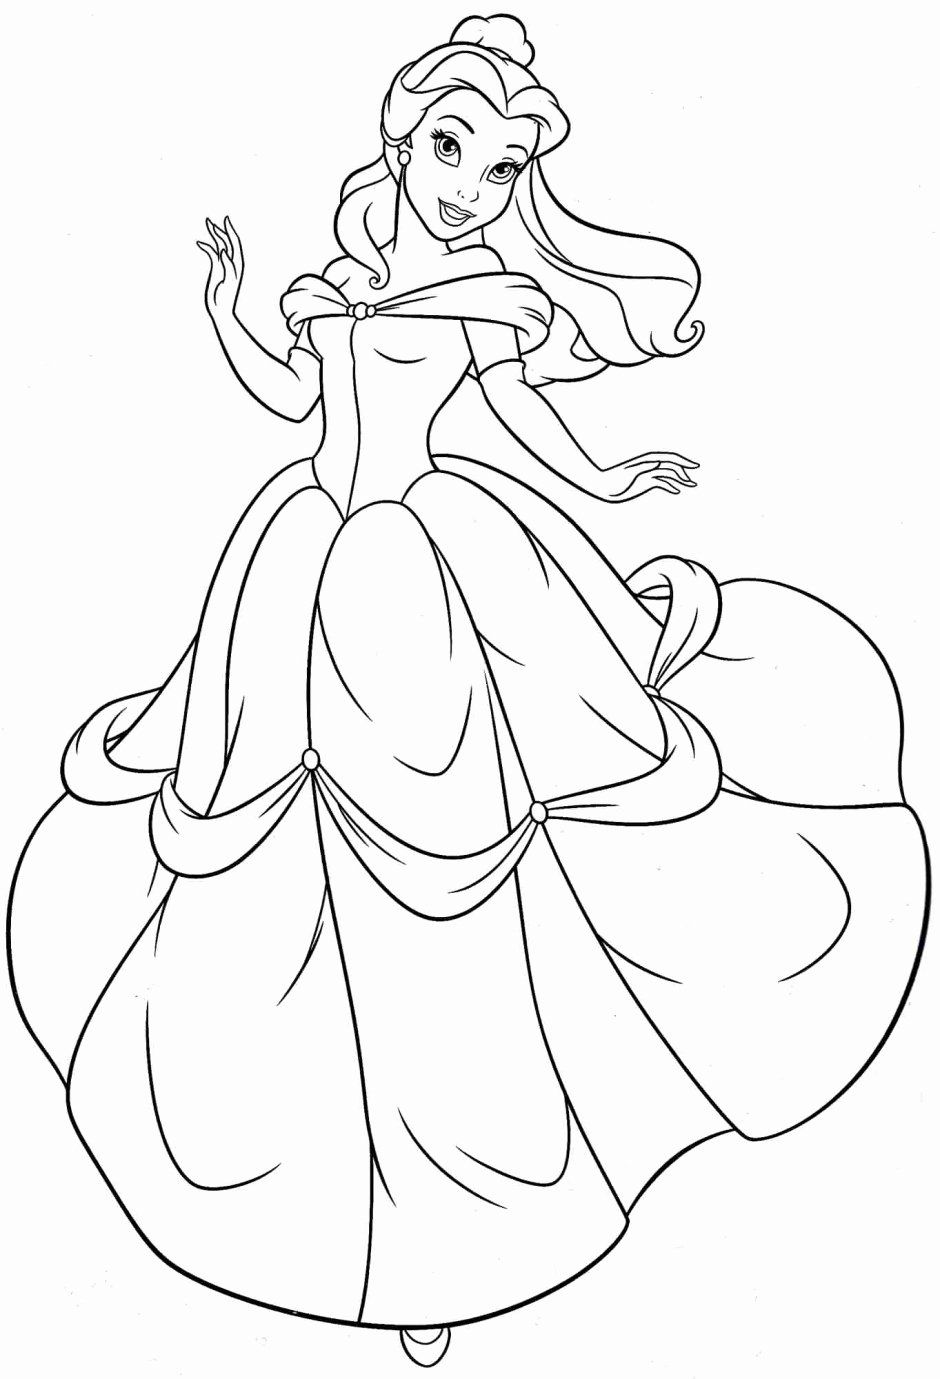 Disney Princess Coloring Page Luxury Free Printable Belle Coloring Pages For Kids In 2020 Disney Princess Coloring Pages Disney Princess Colors Disney Coloring Pages